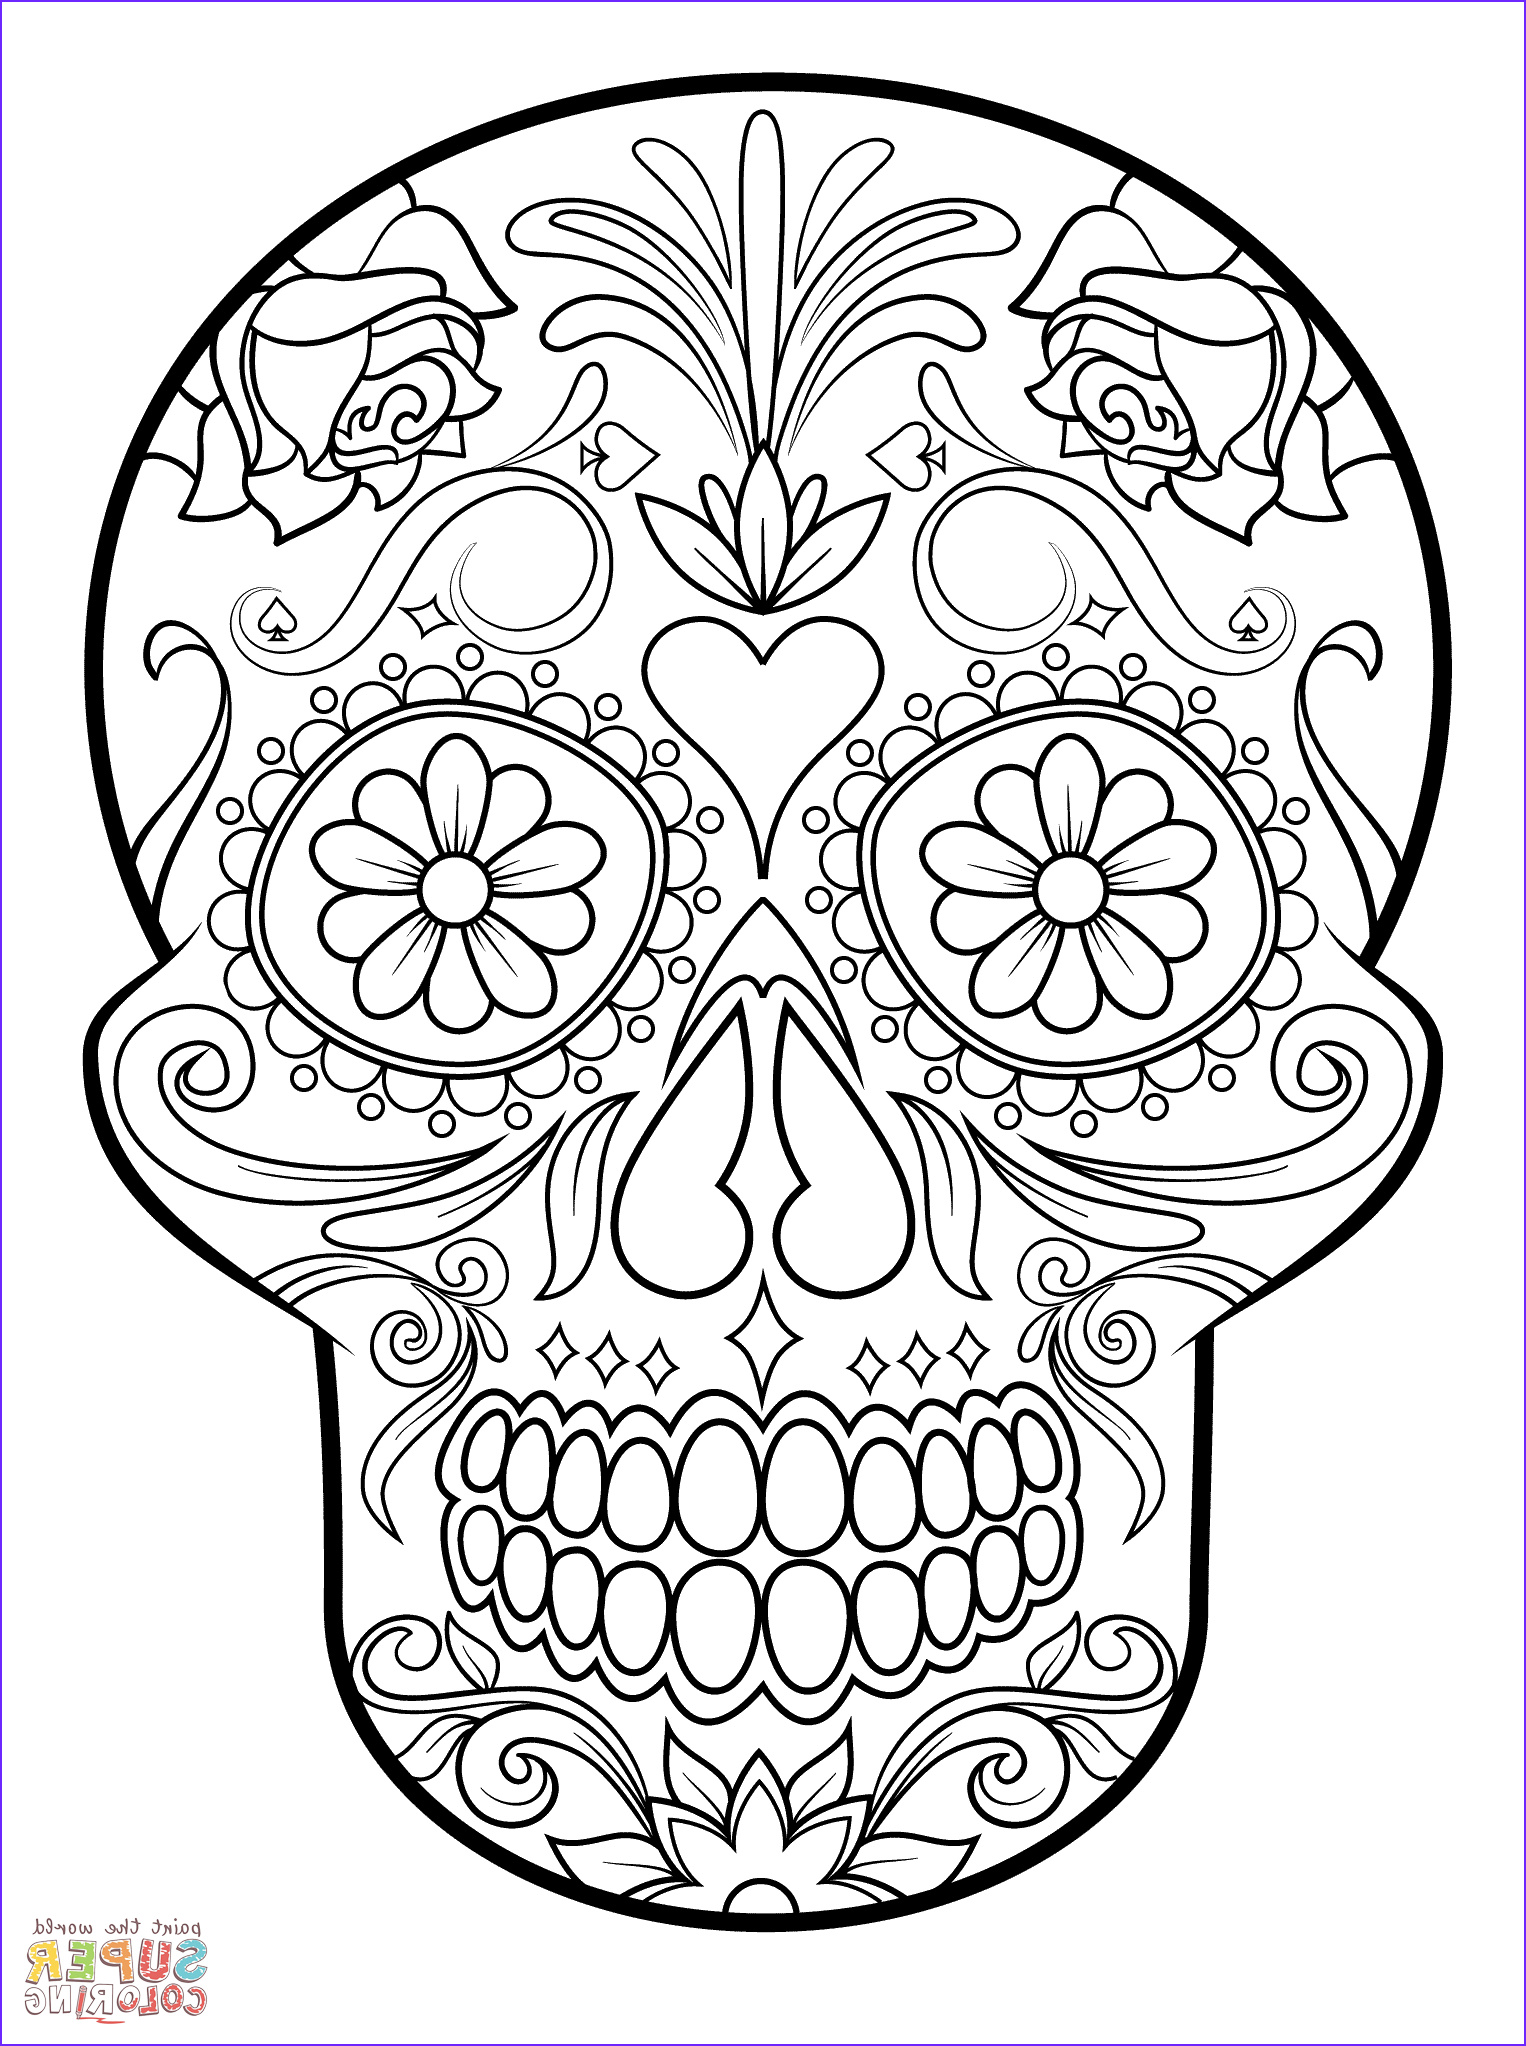 Sugar Skull Coloring Book Unique Images Sugar Skull Super Coloring Crafts